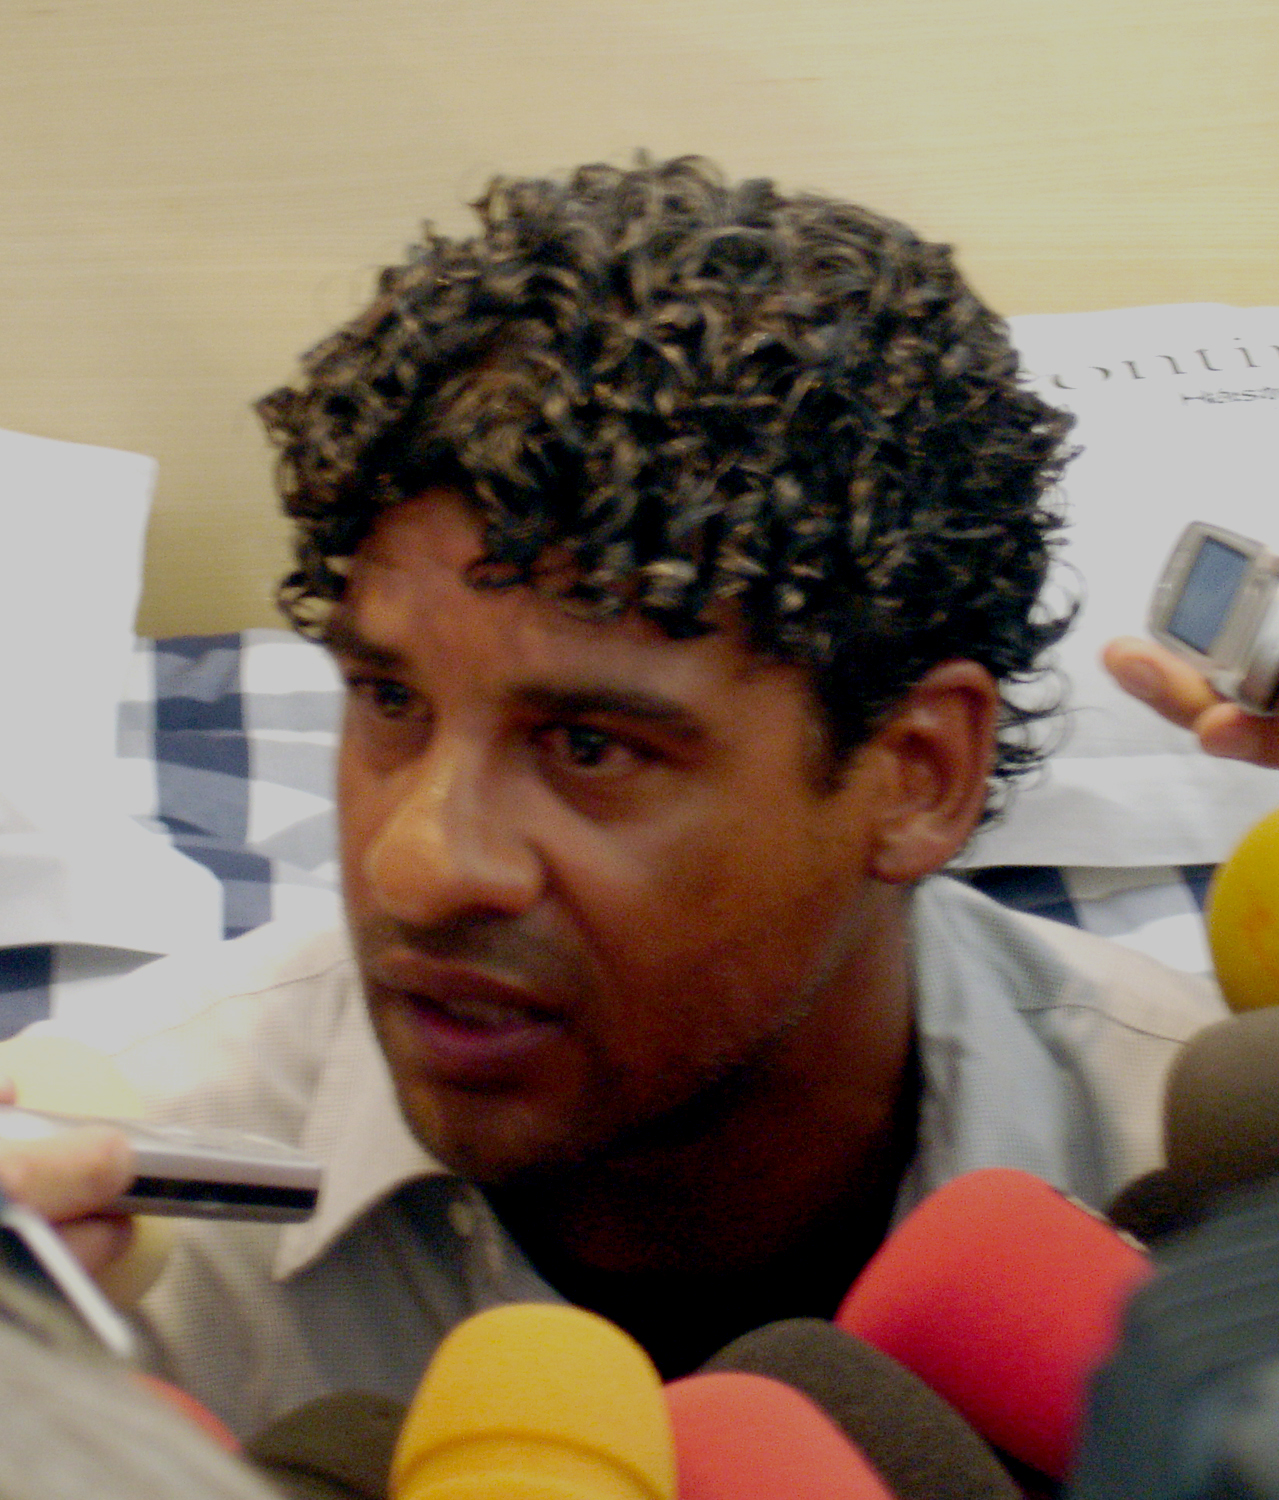 The 56-year old son of father (?) and mother(?) Frank Rijkaard in 2019 photo. Frank Rijkaard earned a  million dollar salary - leaving the net worth at 20 million in 2019